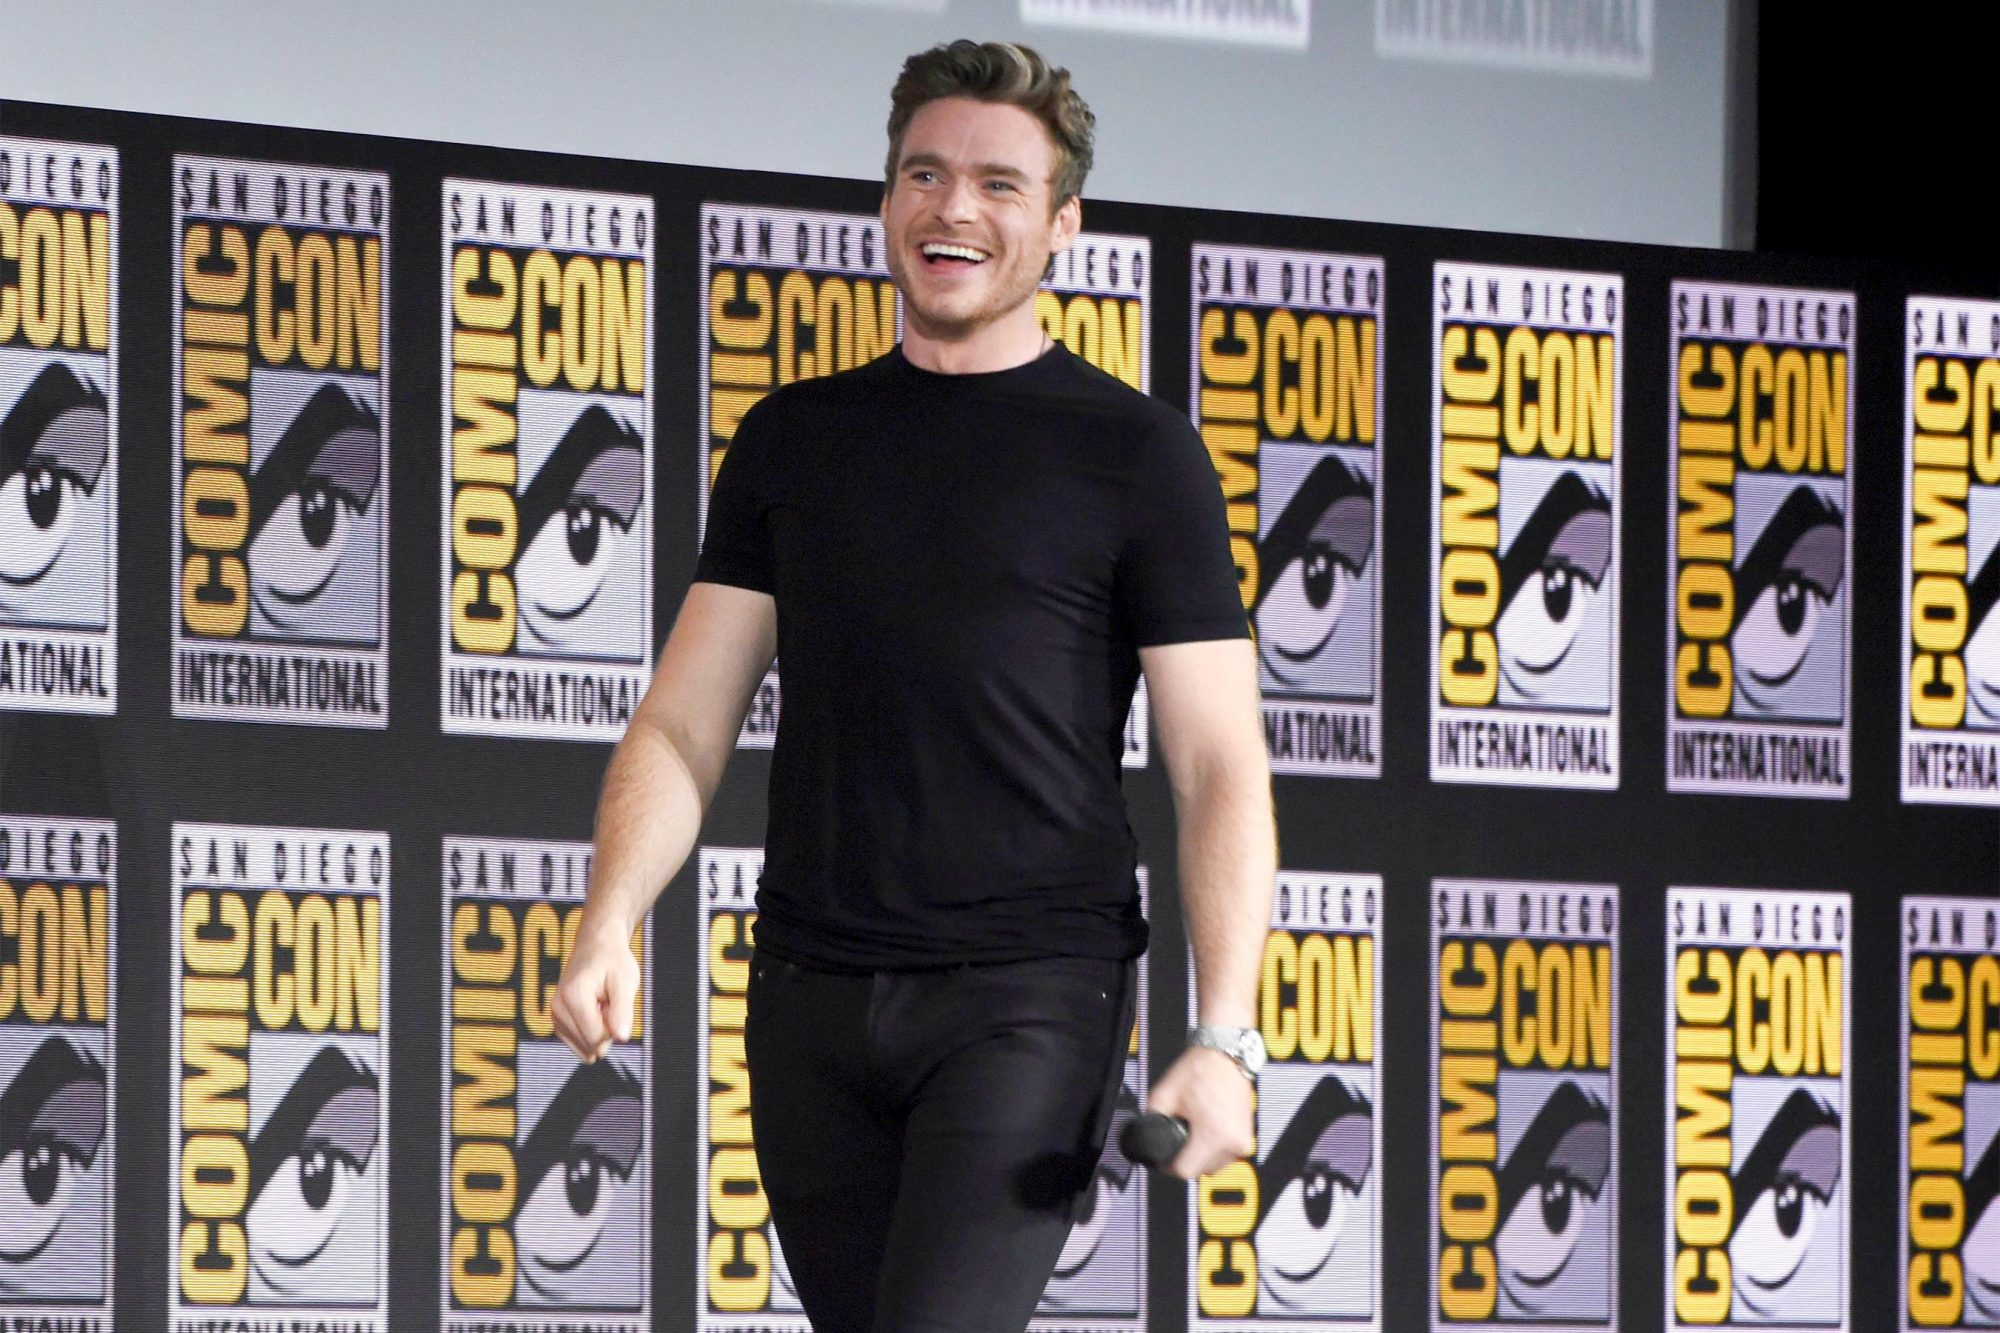 Mandatory Credit: Photo by Chris Pizzello/Invision/AP/Shutterstock (10342690f) Richard Madden walks on stage at the Marvel Studios panel on day three of Comic-Con International, in San Diego 2019 Comic-Con - Marvel Studios, San Diego, USA - 20 Jul 2019